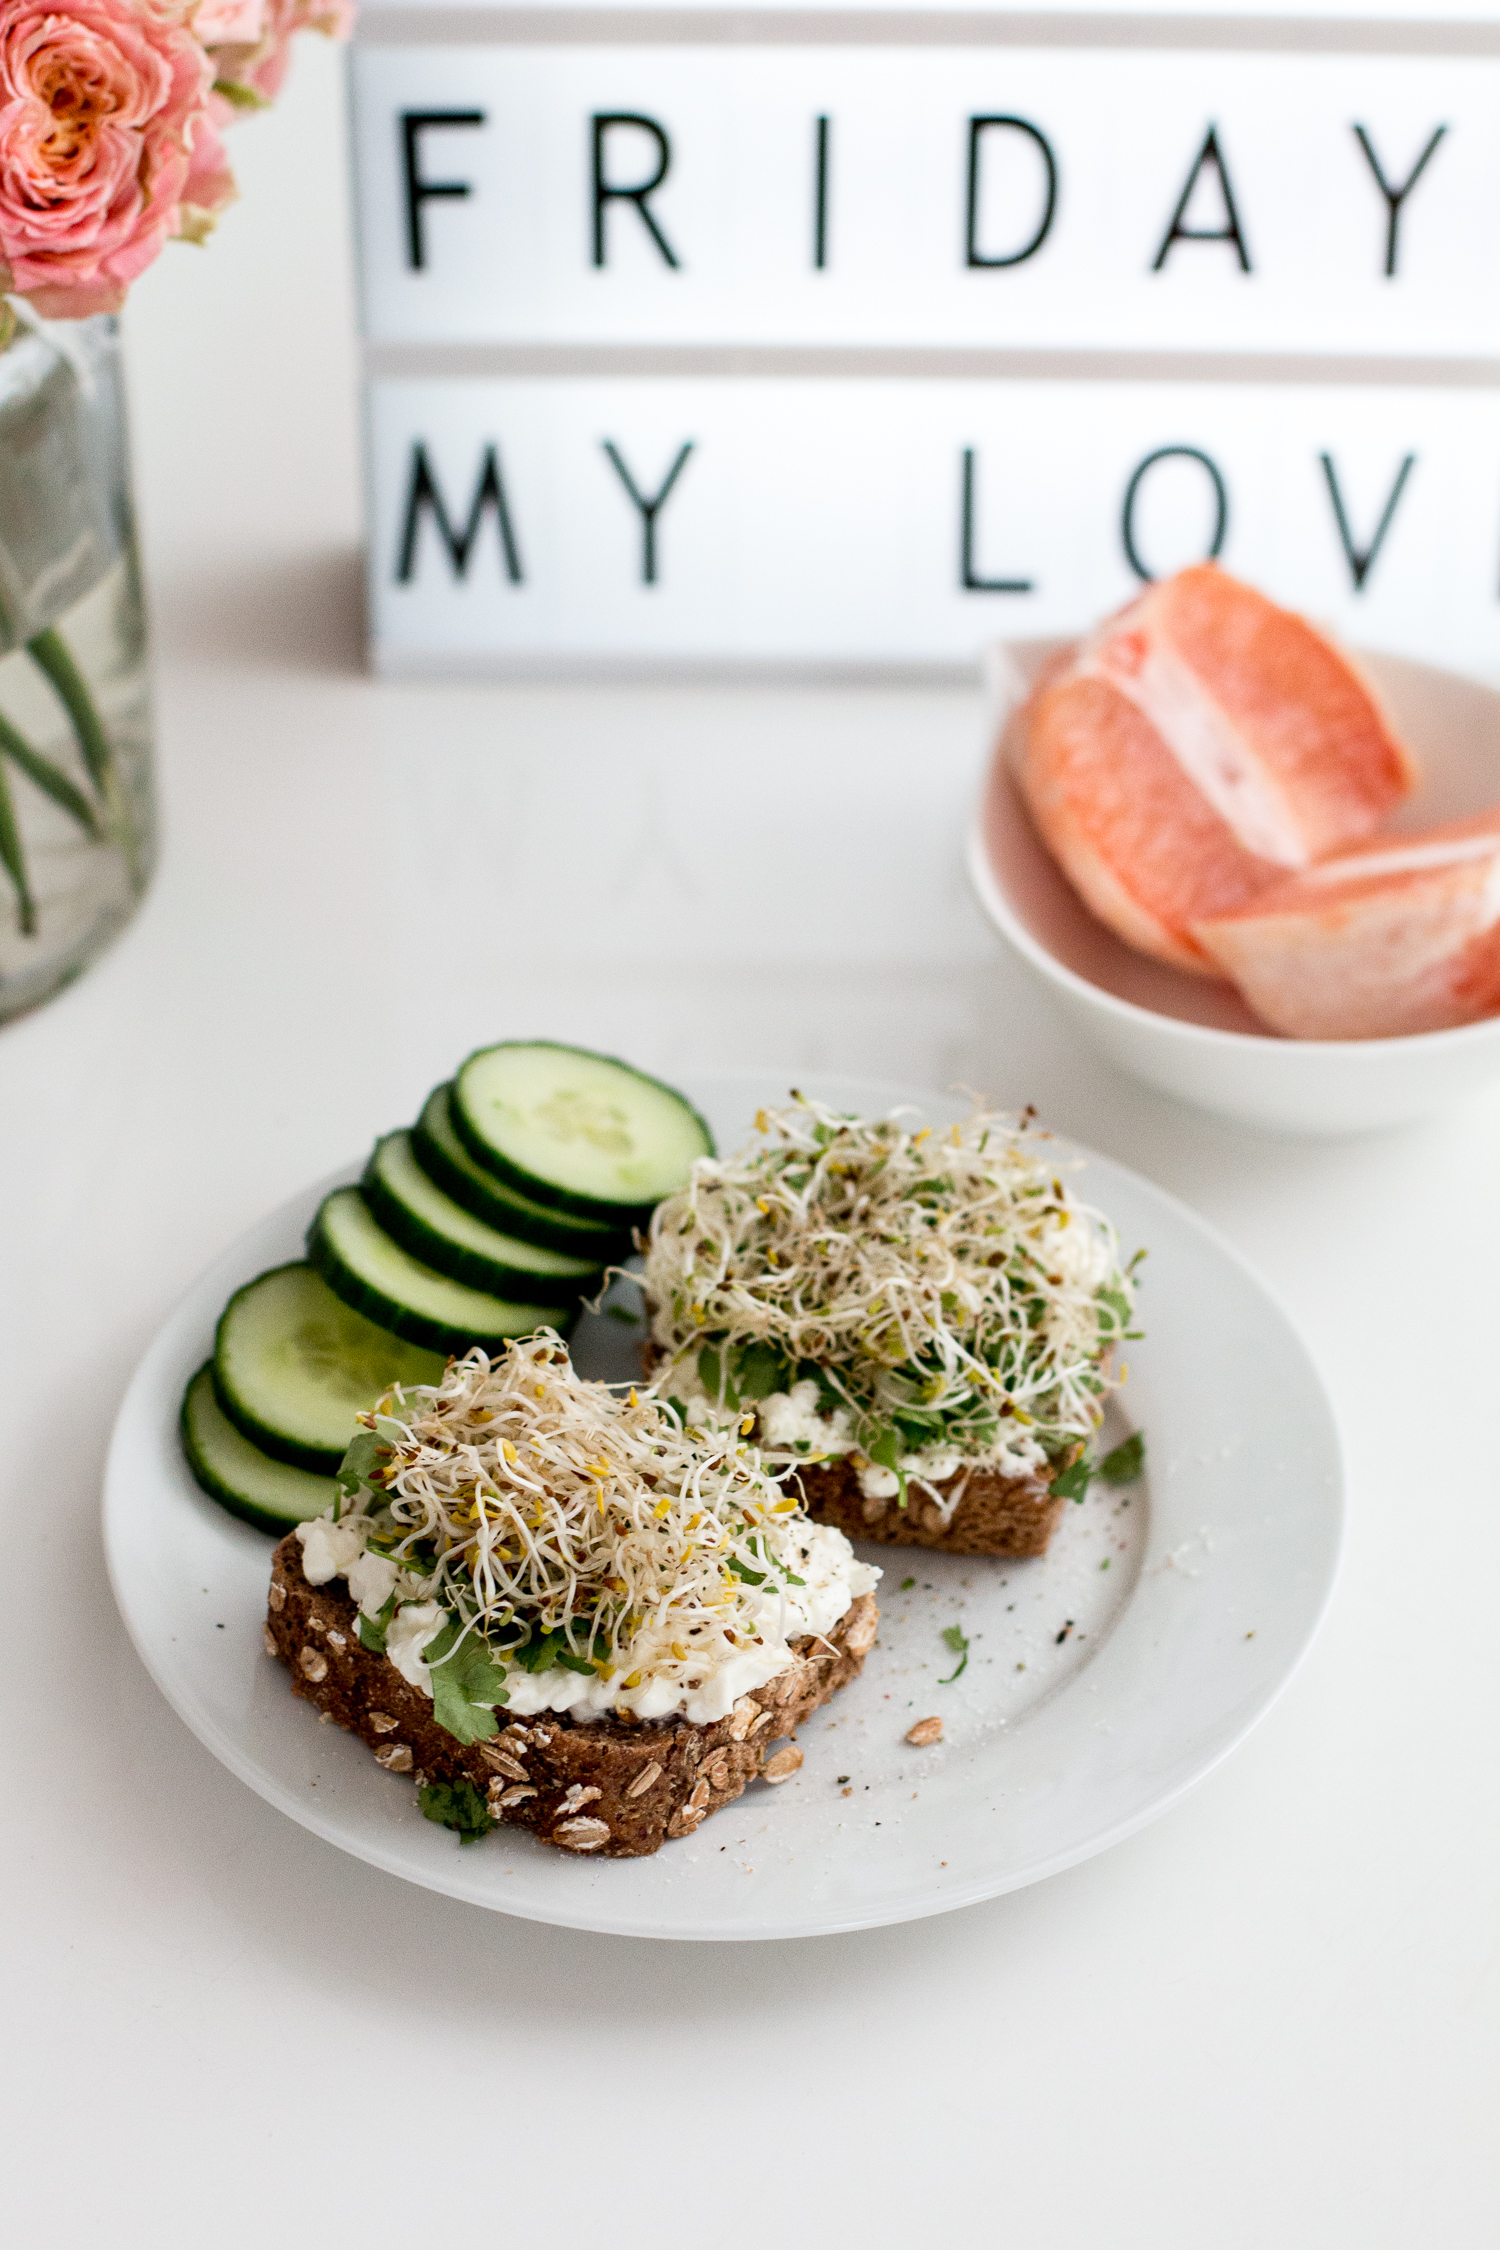 7 days, 7 meals: breakfast diary